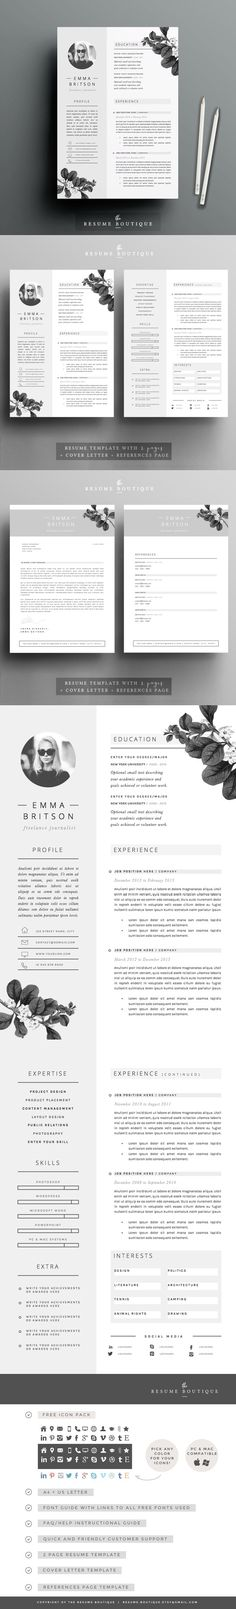 Resume Template 4 pages Minerva Resume, Templates and Resume - resume site